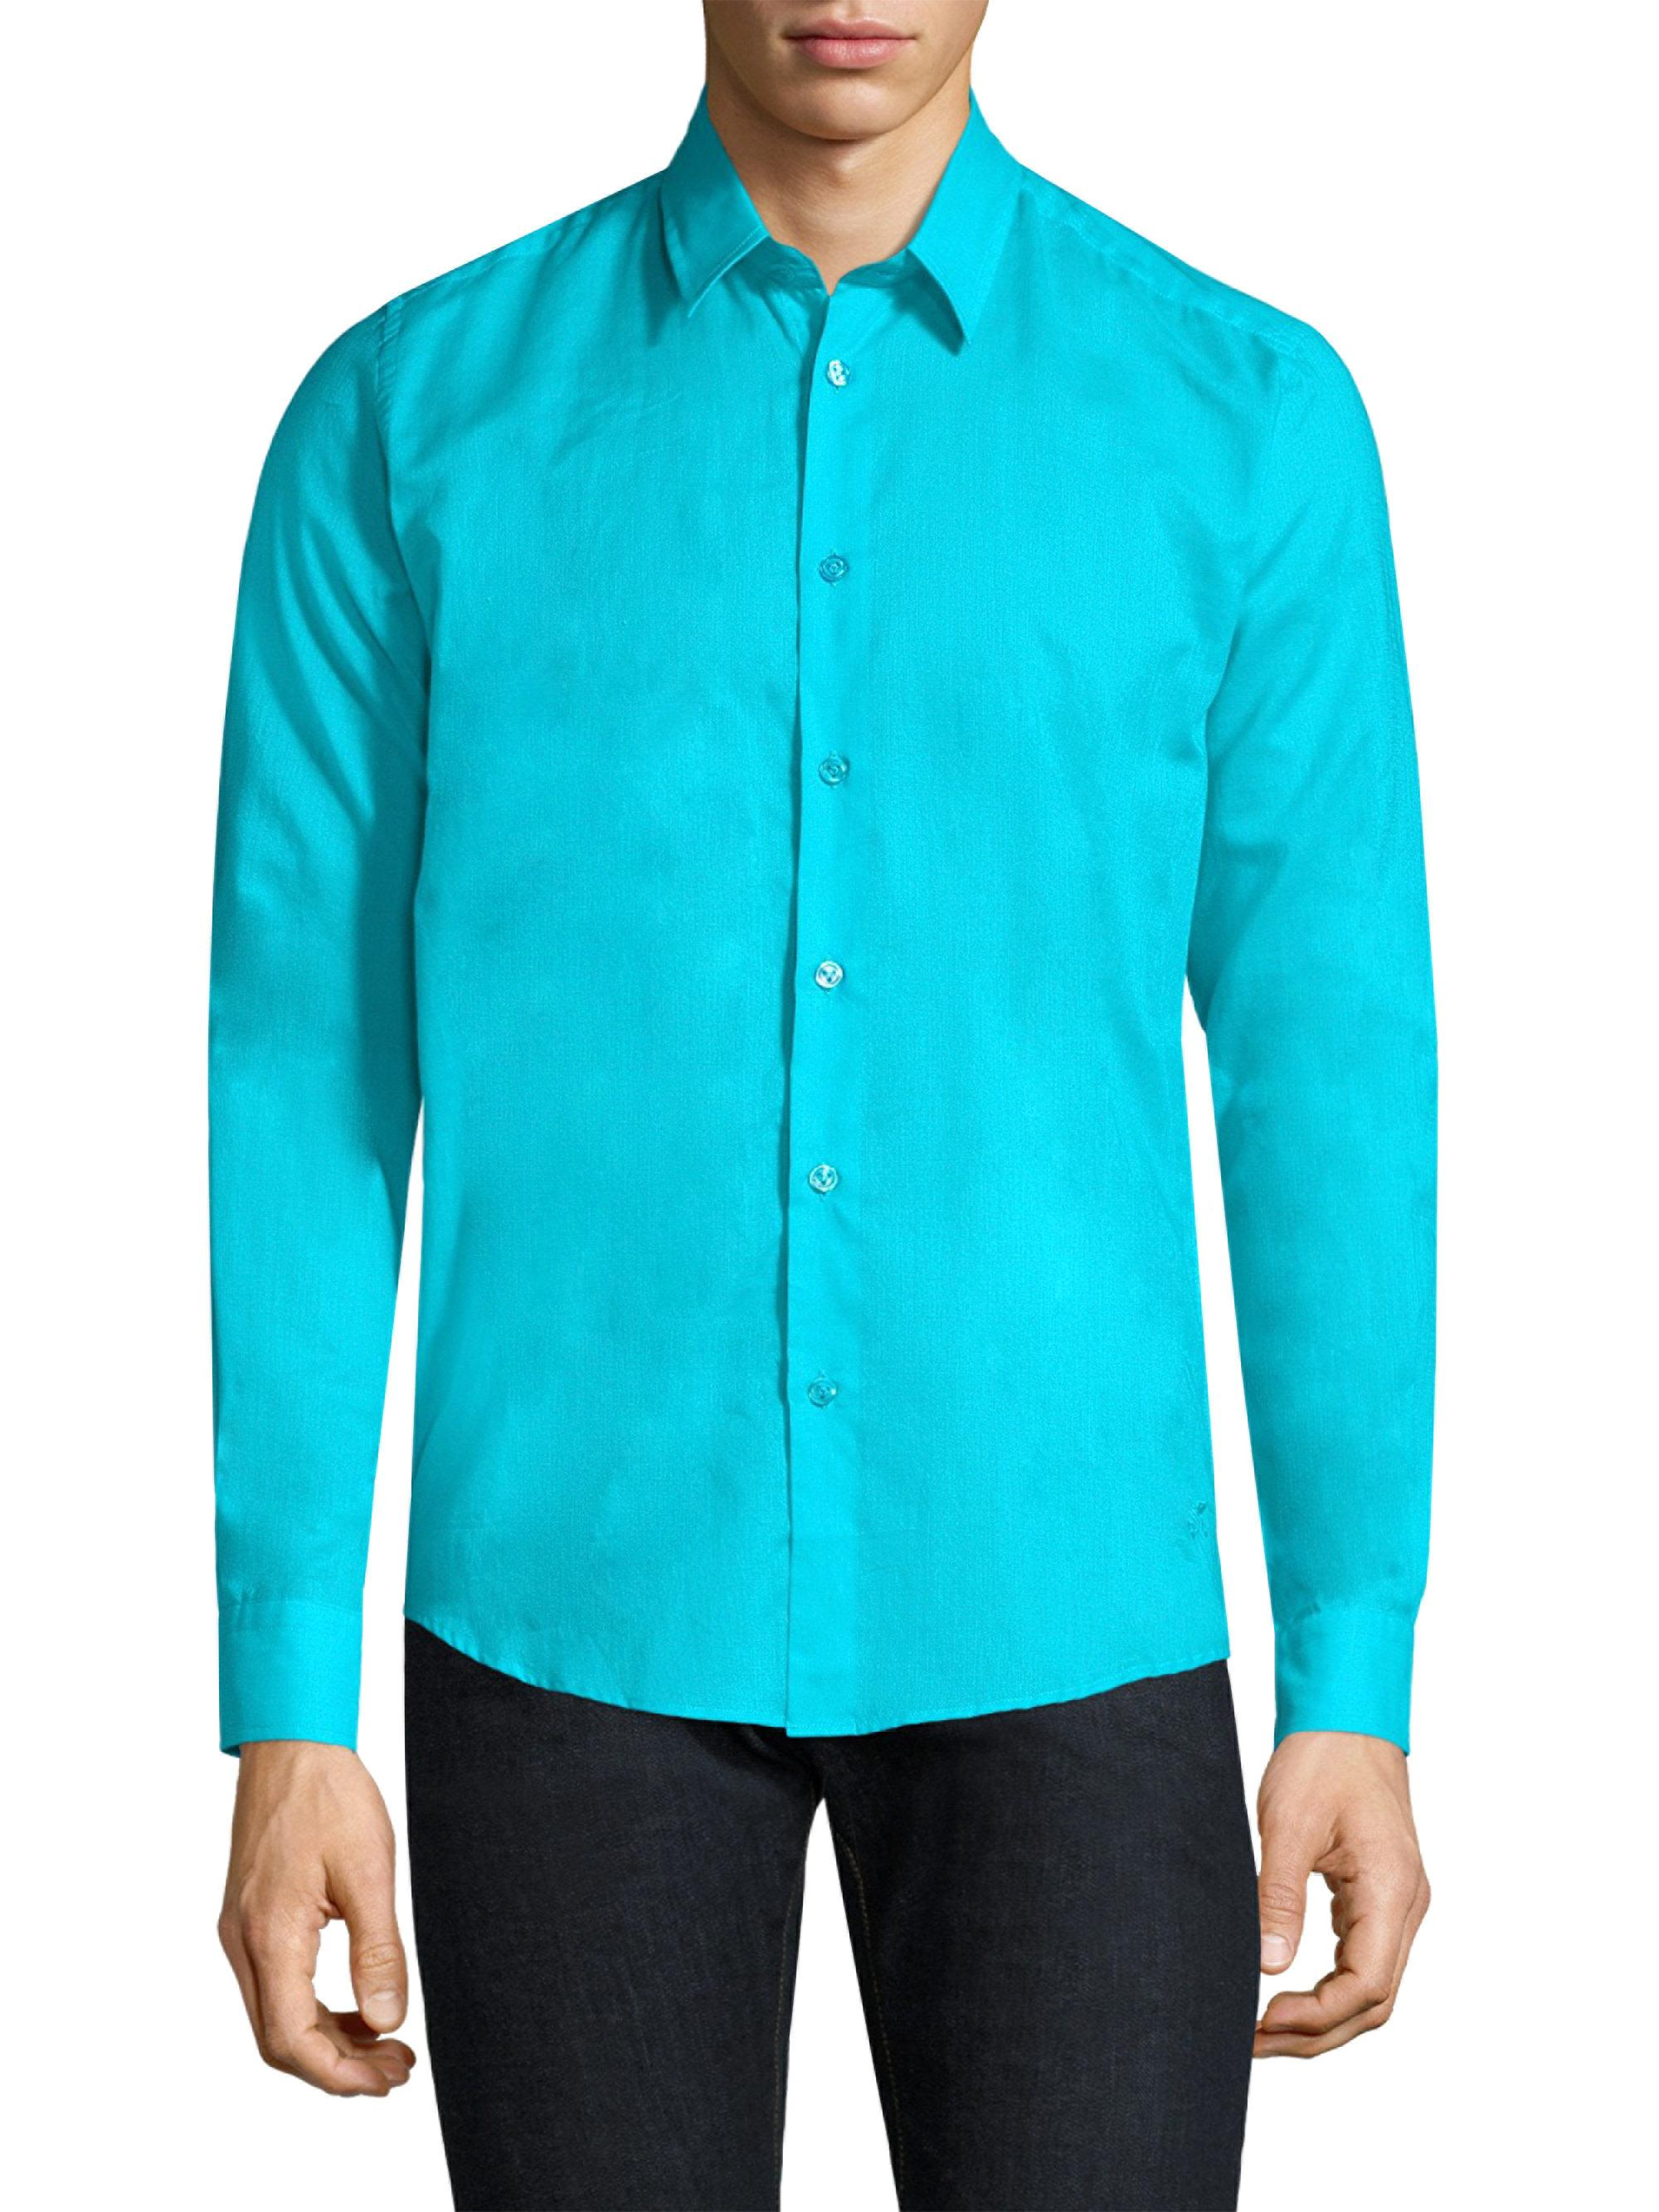 Lyst vilebrequin classic cotton button down shirt in for Preppy button down shirts